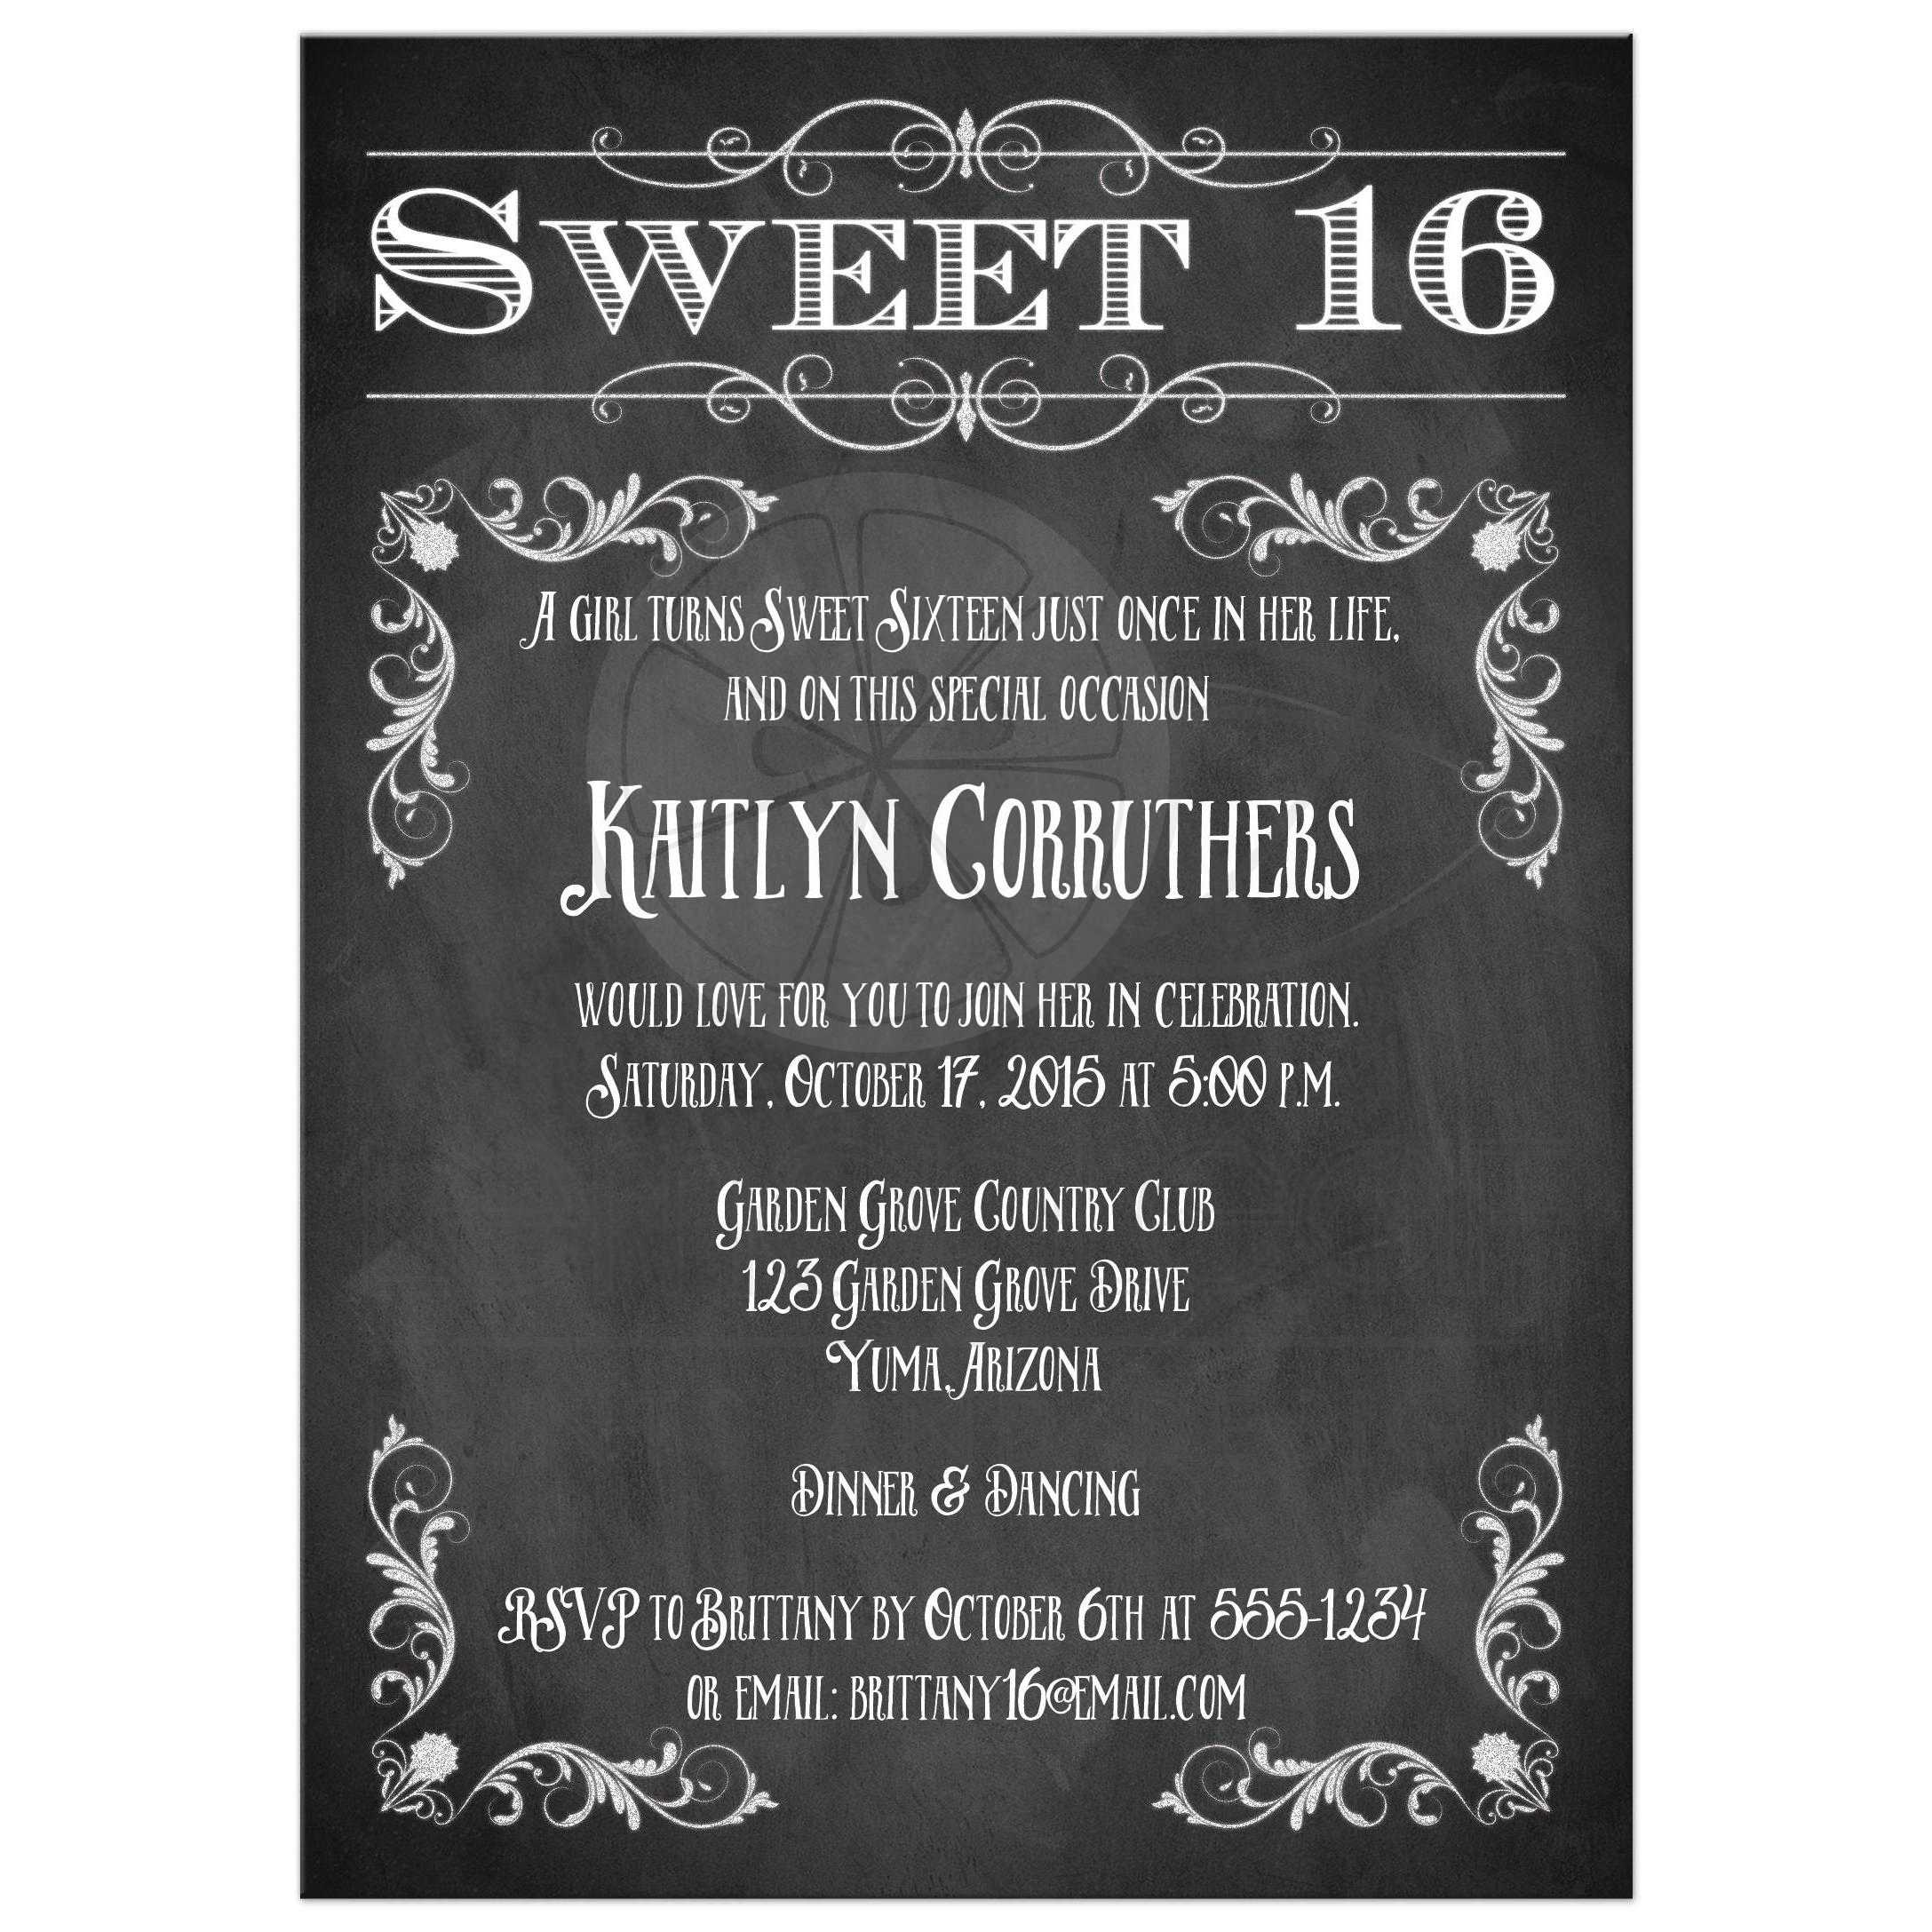 Chalkboard Sweet 16 Birthday Invitation With Vintage Scrolls And Flourishes